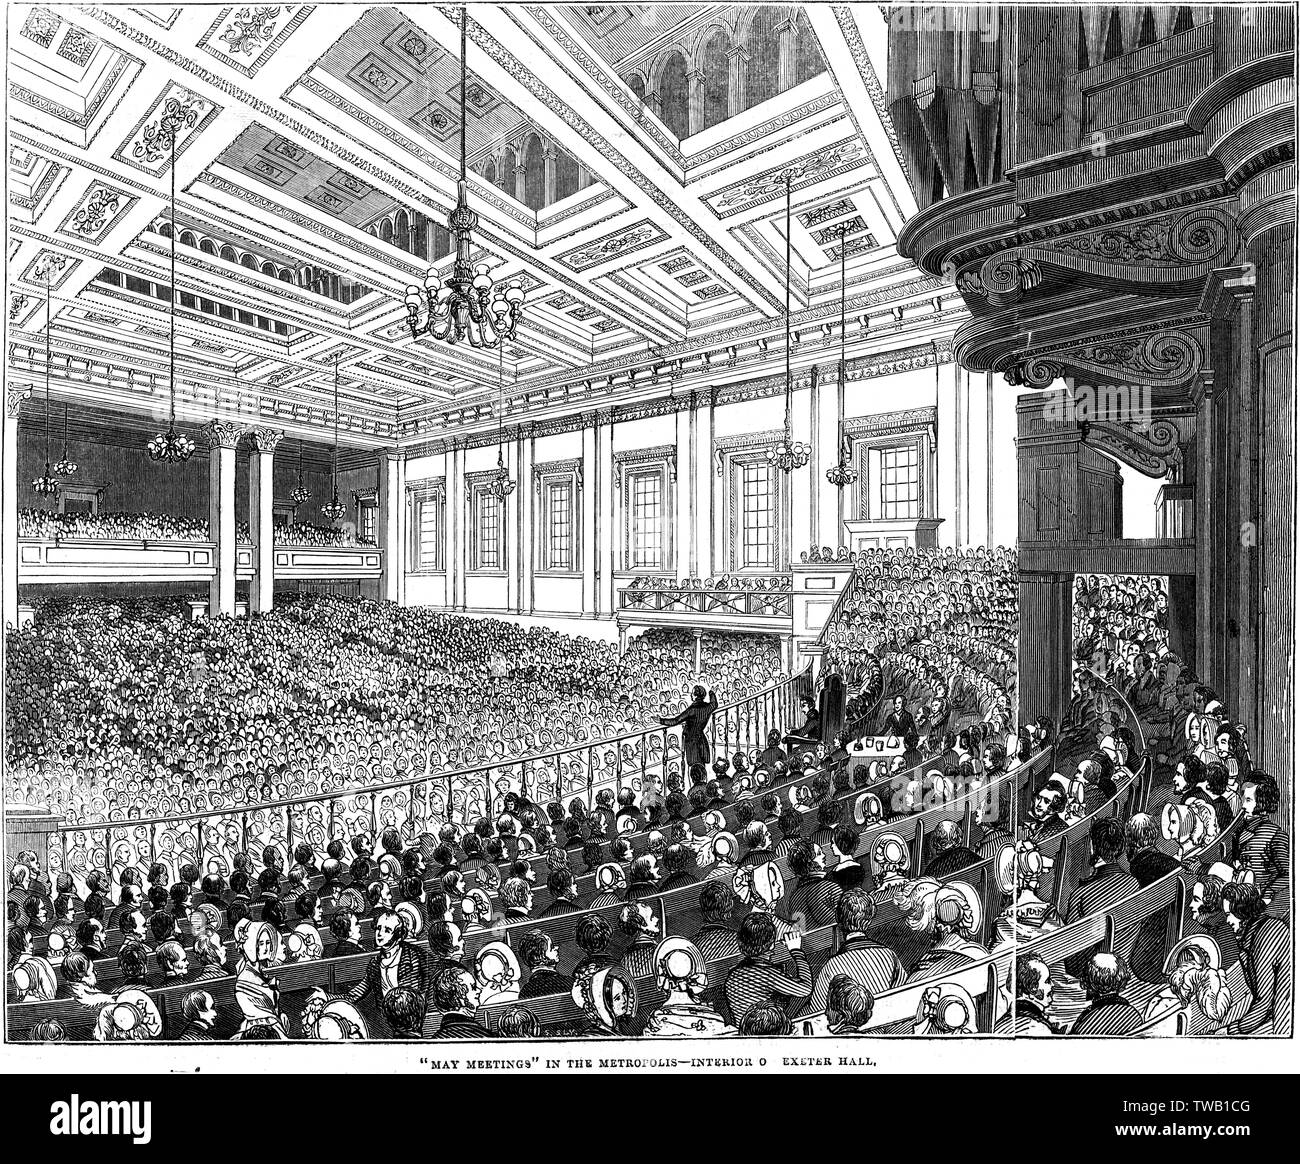 Exeter Hall: interior view, with a large 'May Meeting' in progress (many charitable organisations held their meetings there)     Date: 1844 - Stock Image